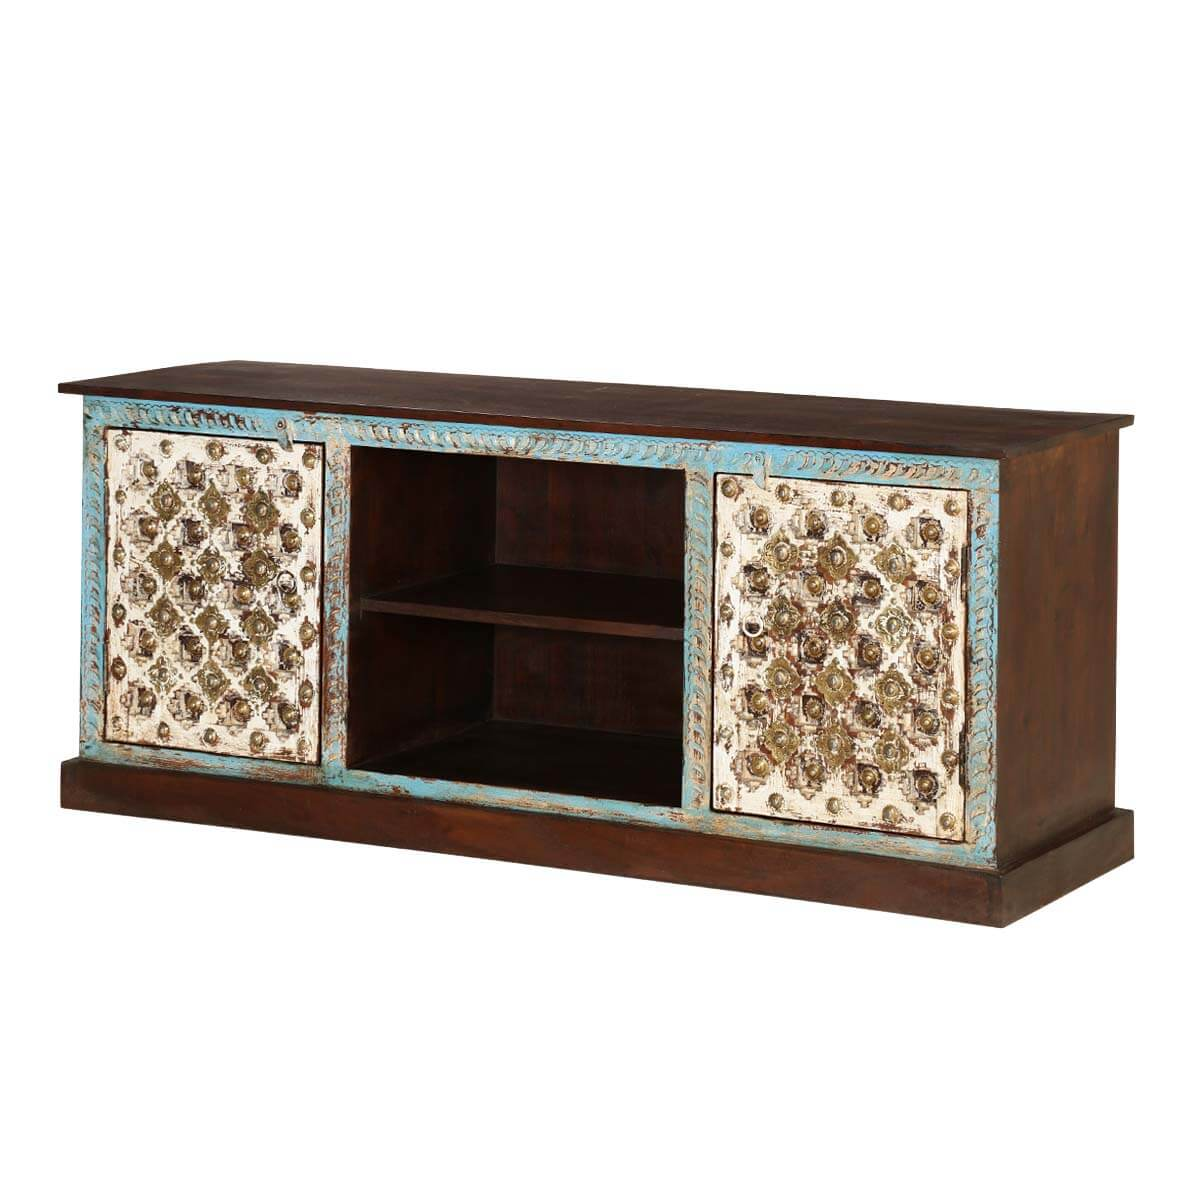 "Cincinnati Intricate Crafted 59"" Wide Accent Media Console"